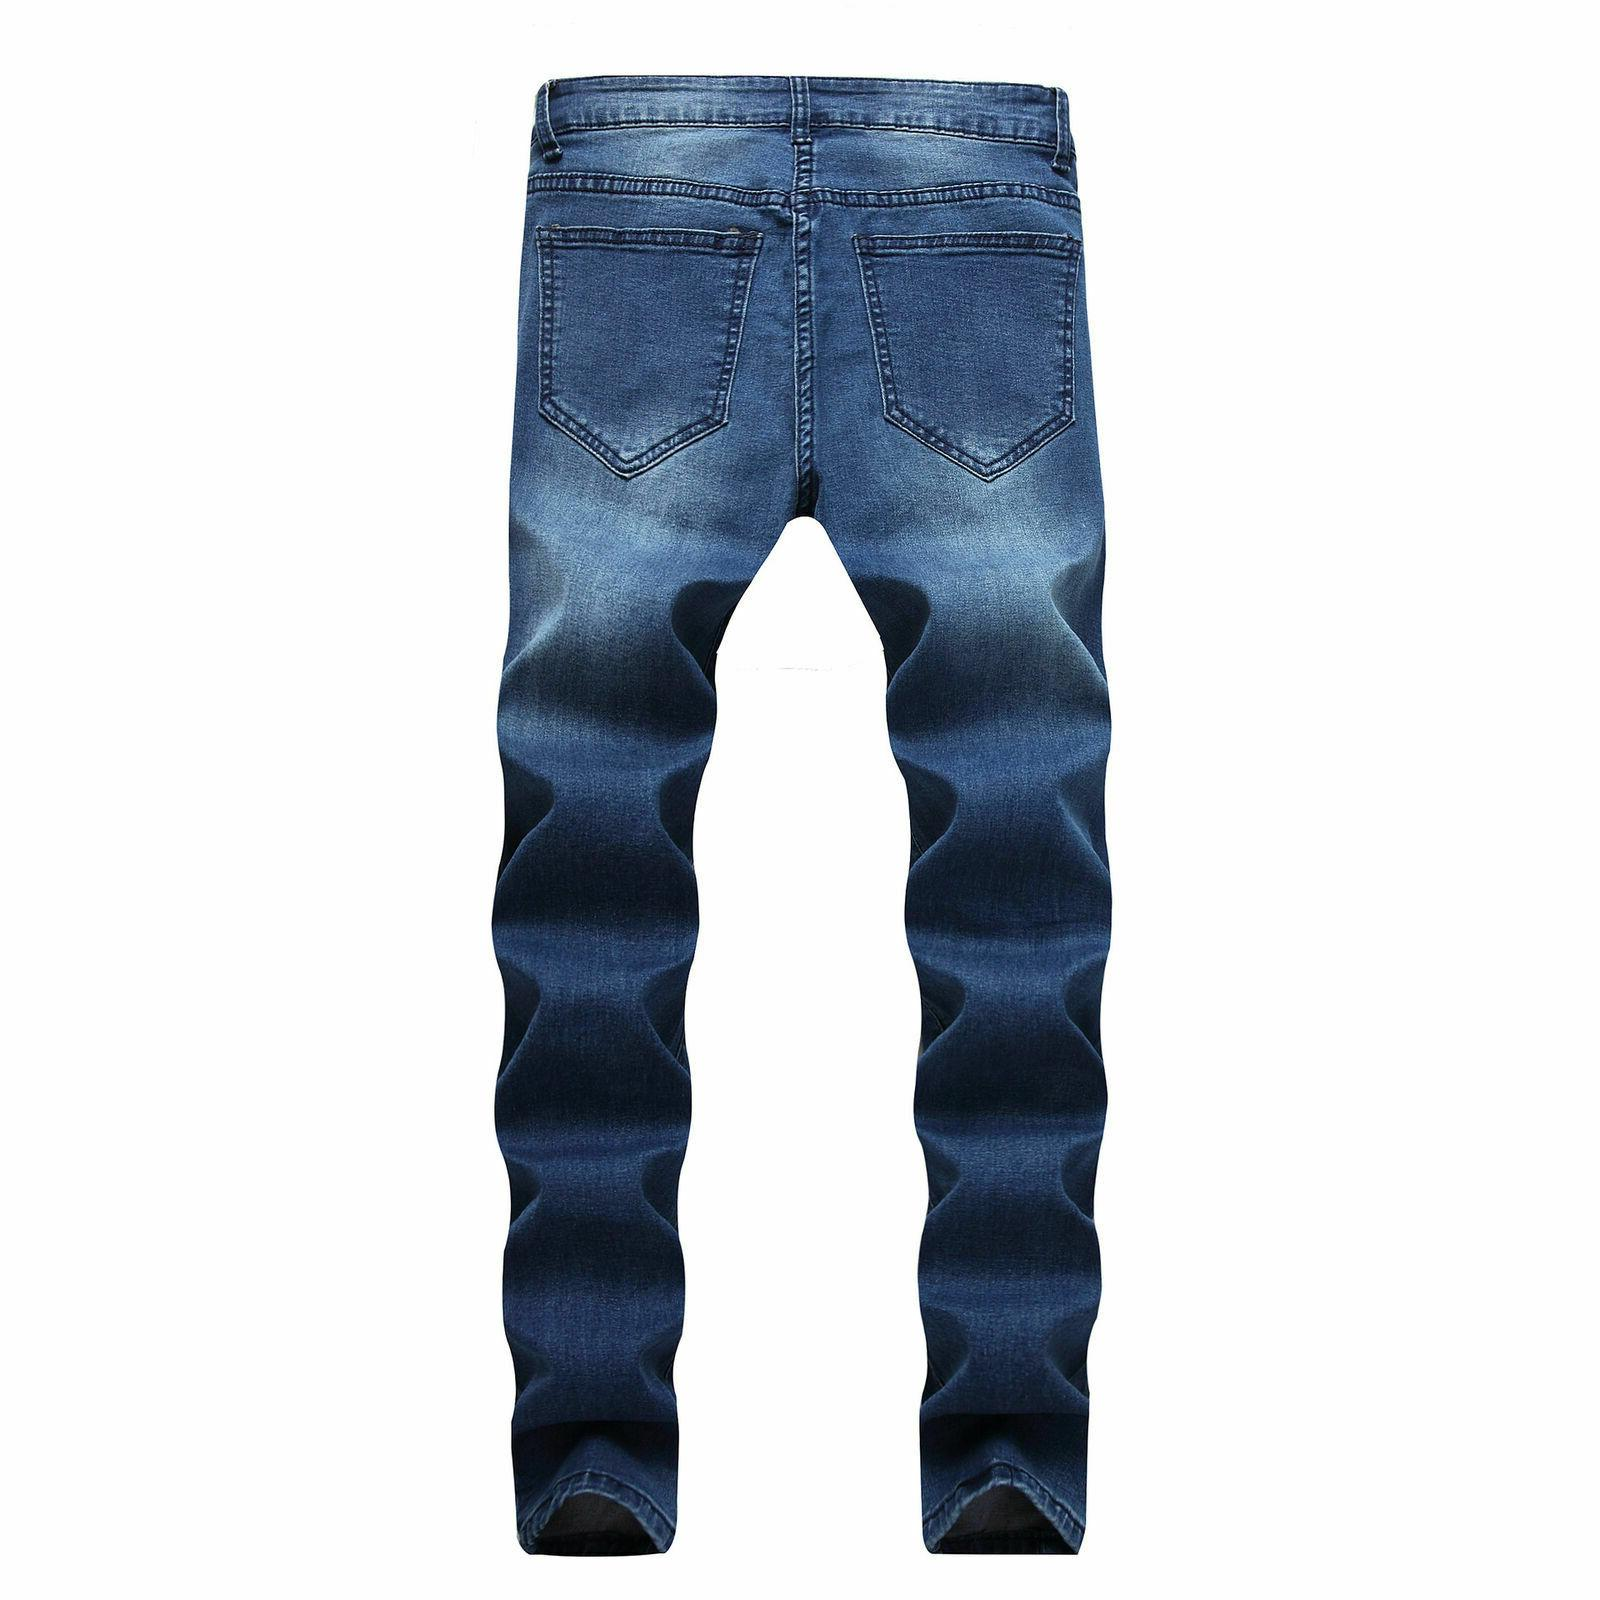 Men Stretch Ripped Skinny Style Jeans Tapered Fit Pants